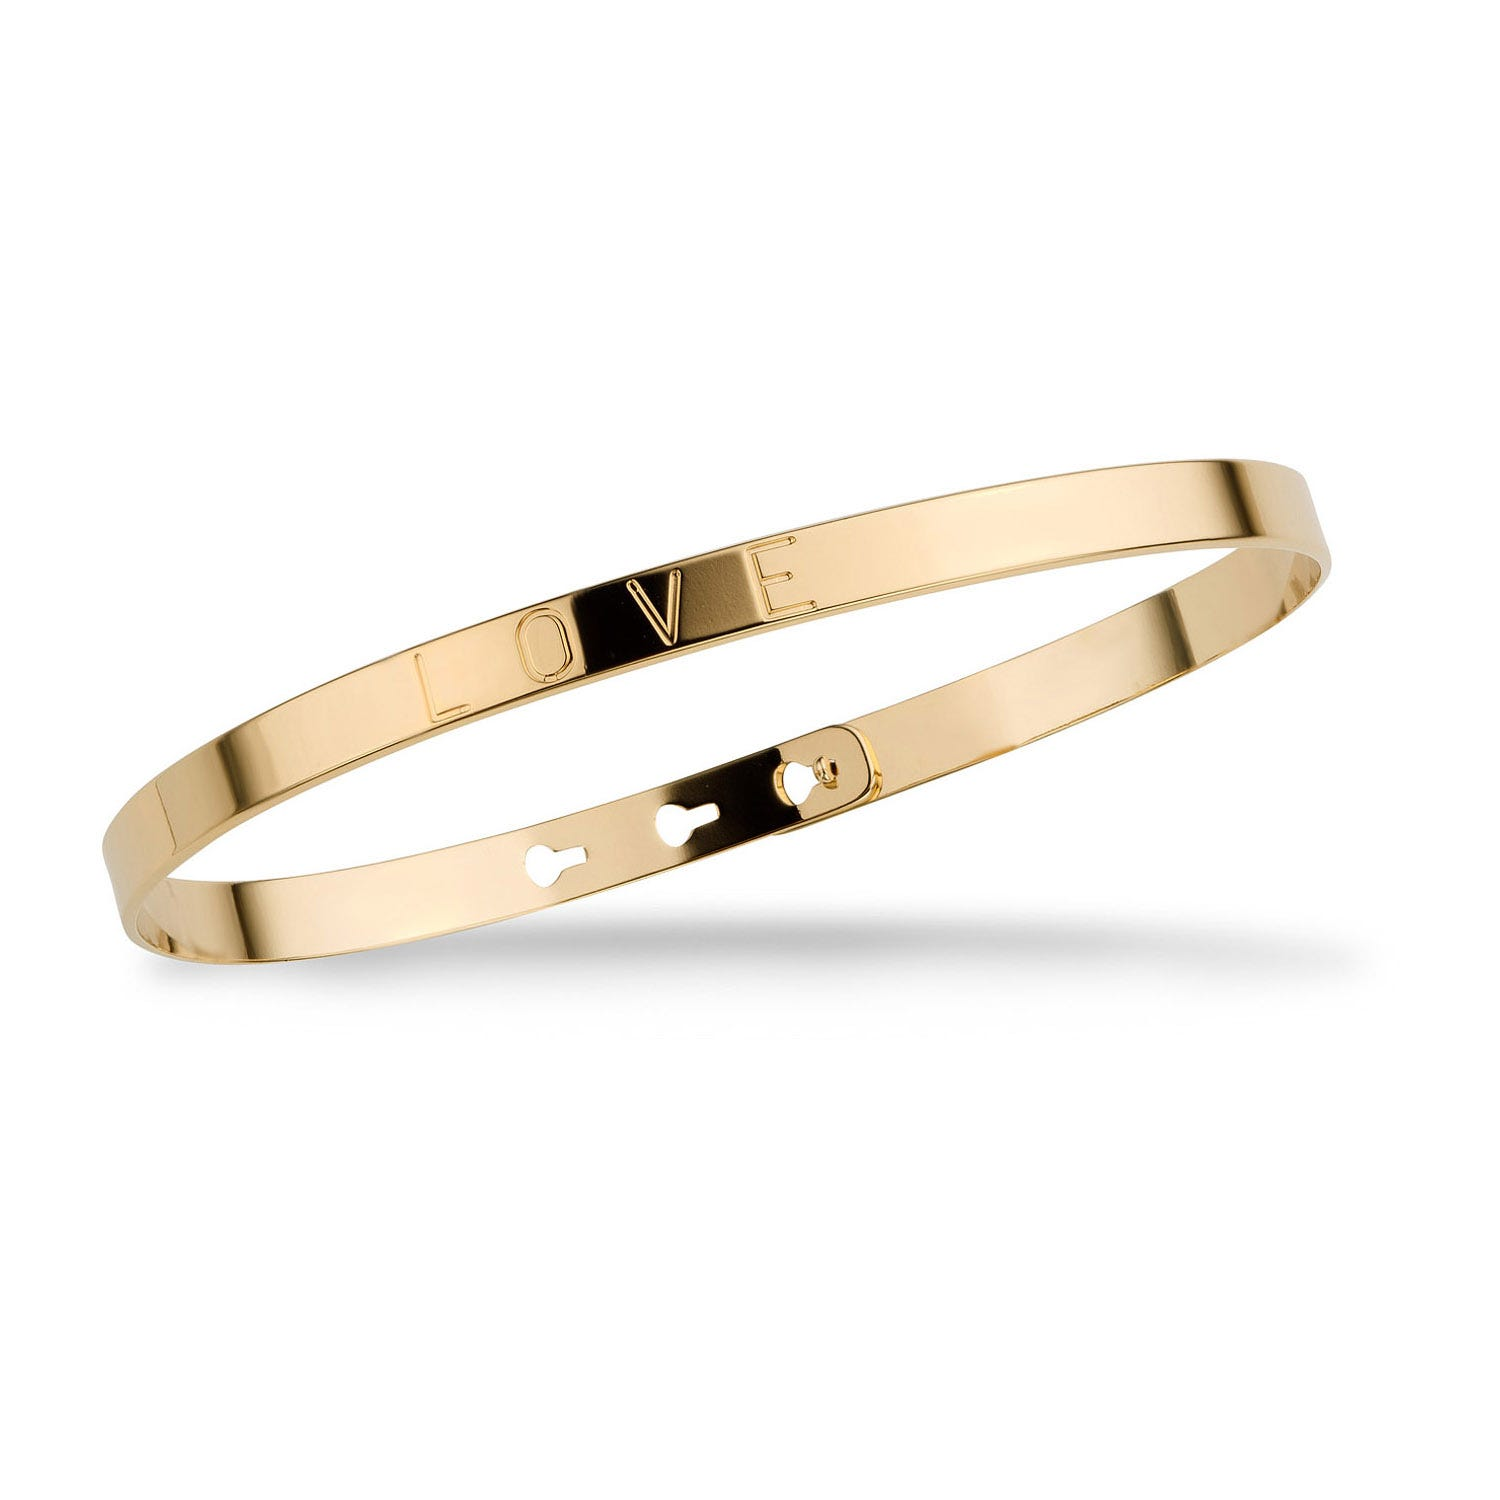 Mya Bay Yellow Gold-Plated 'Love' Bangle